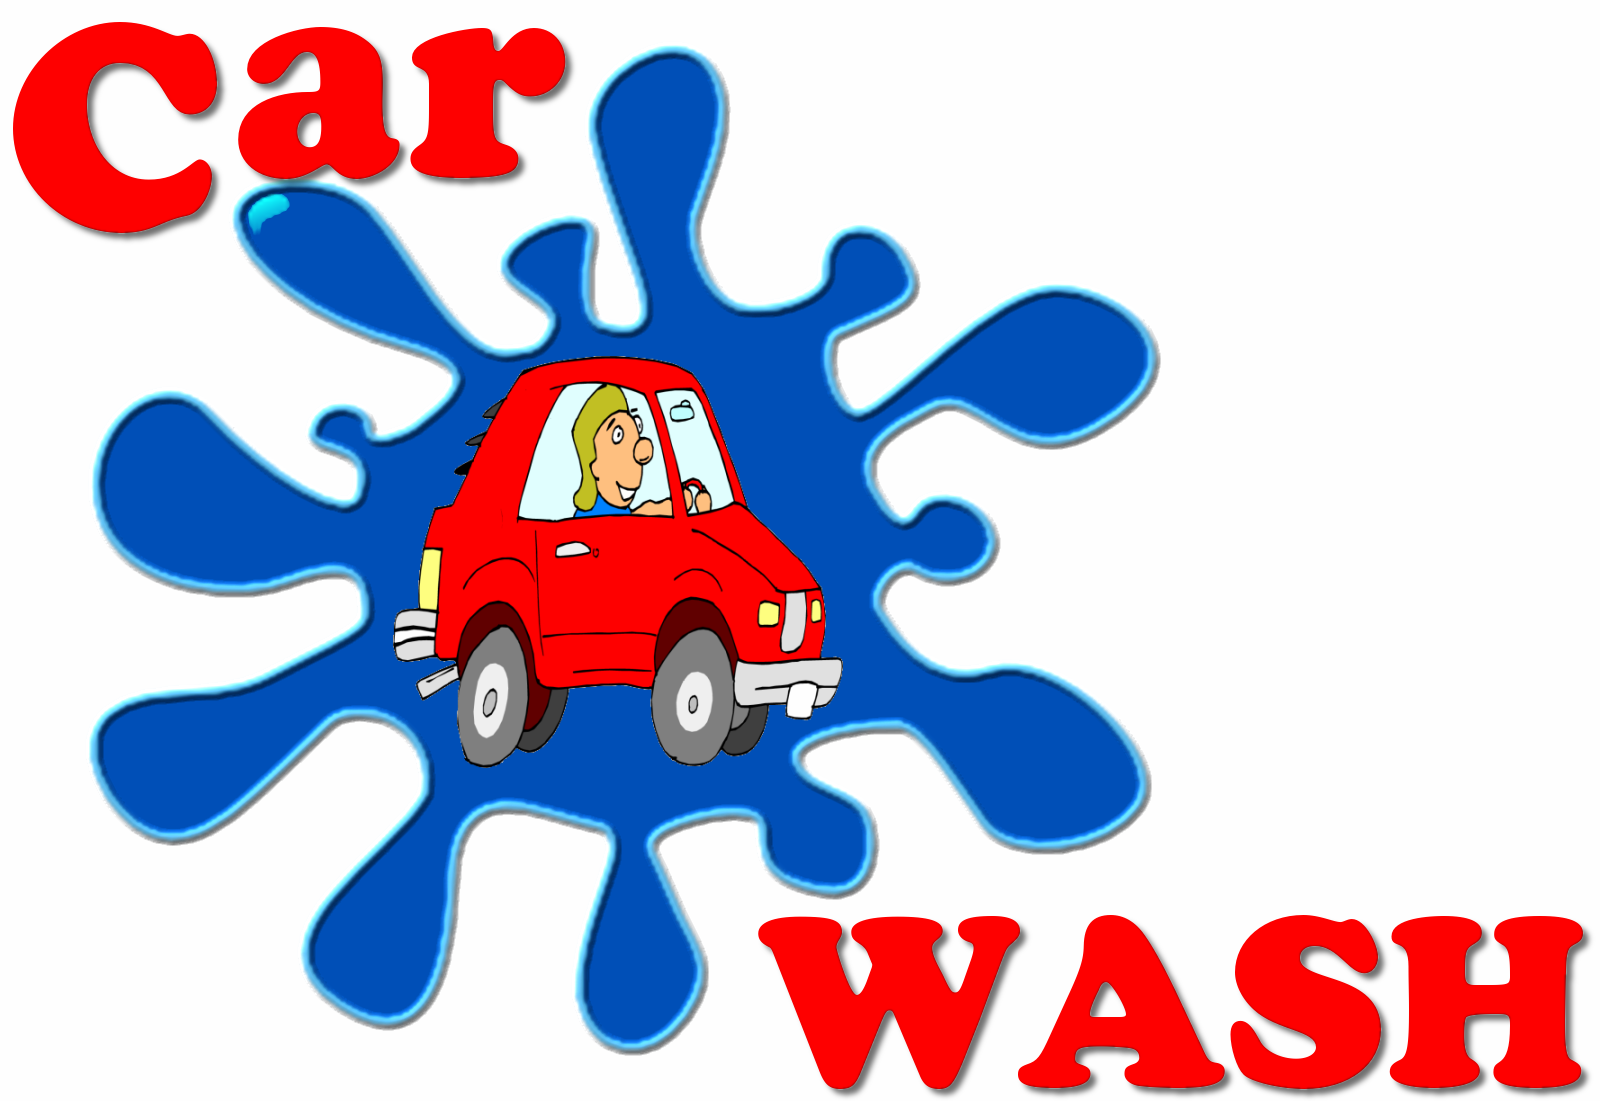 washout clipart word 2010 - photo #1